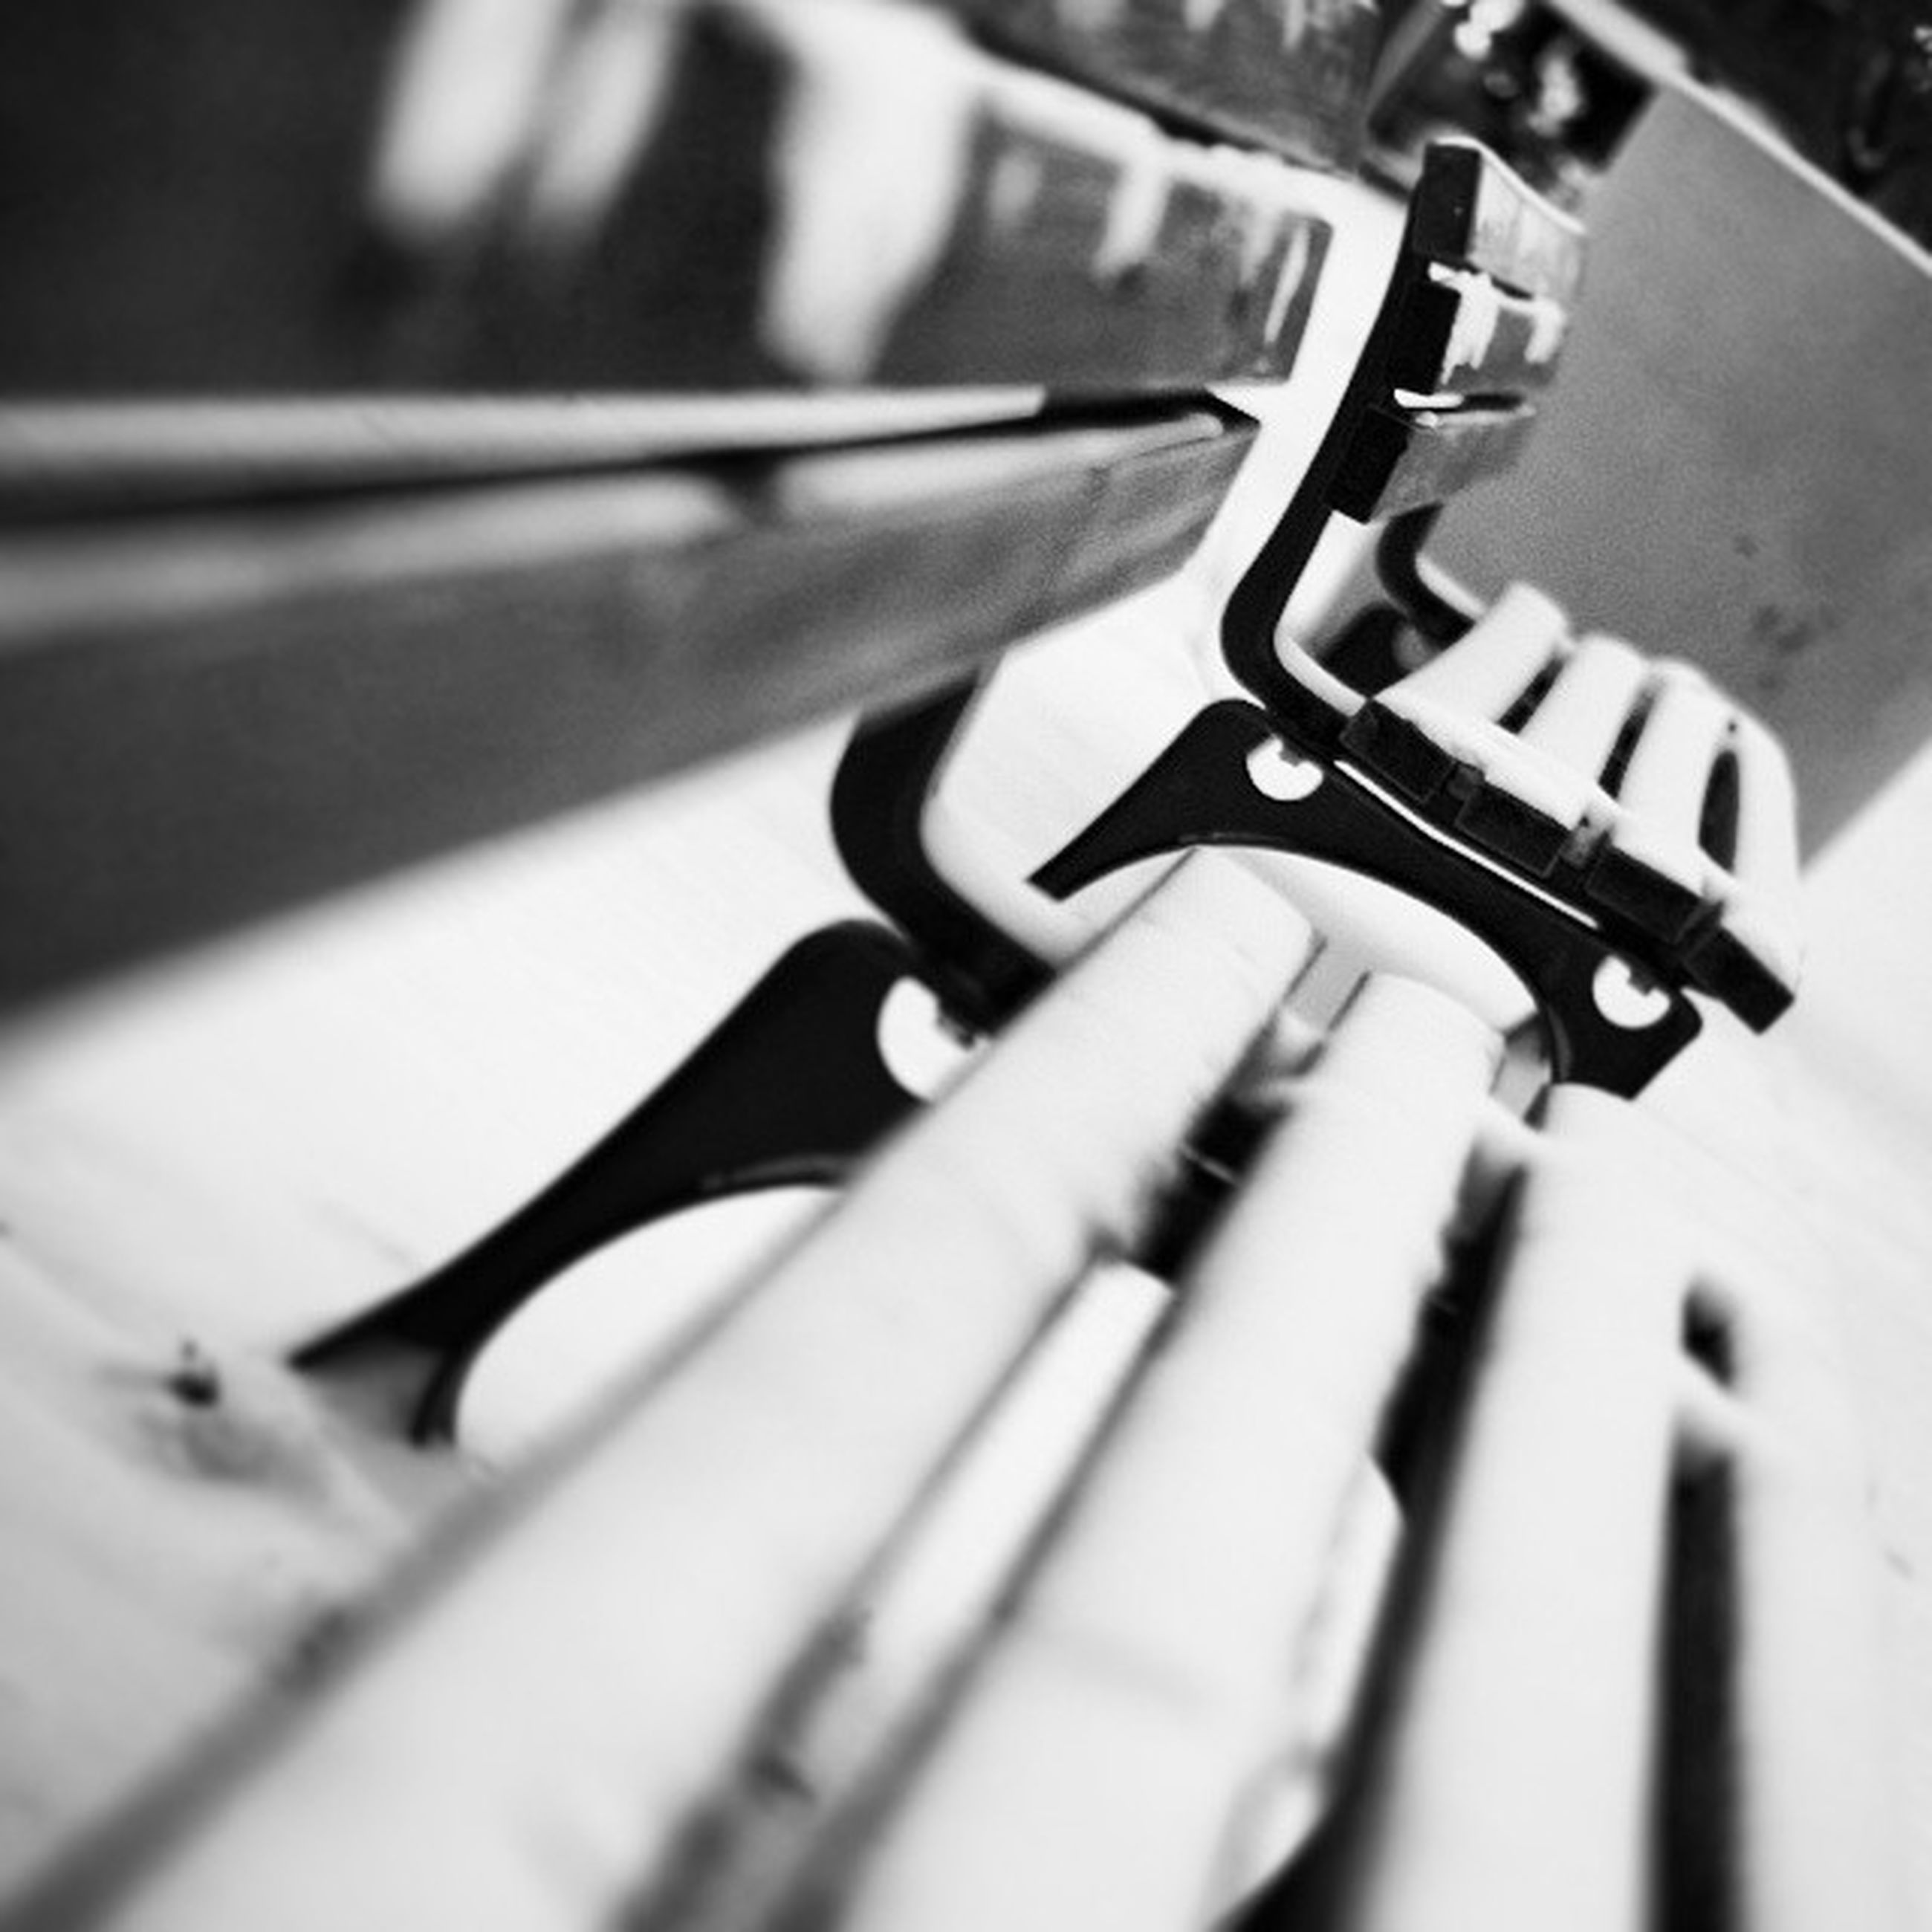 indoors, selective focus, close-up, focus on foreground, metal, music, musical instrument, metallic, arts culture and entertainment, shadow, no people, in a row, musical equipment, still life, part of, high angle view, pattern, technology, low angle view, day